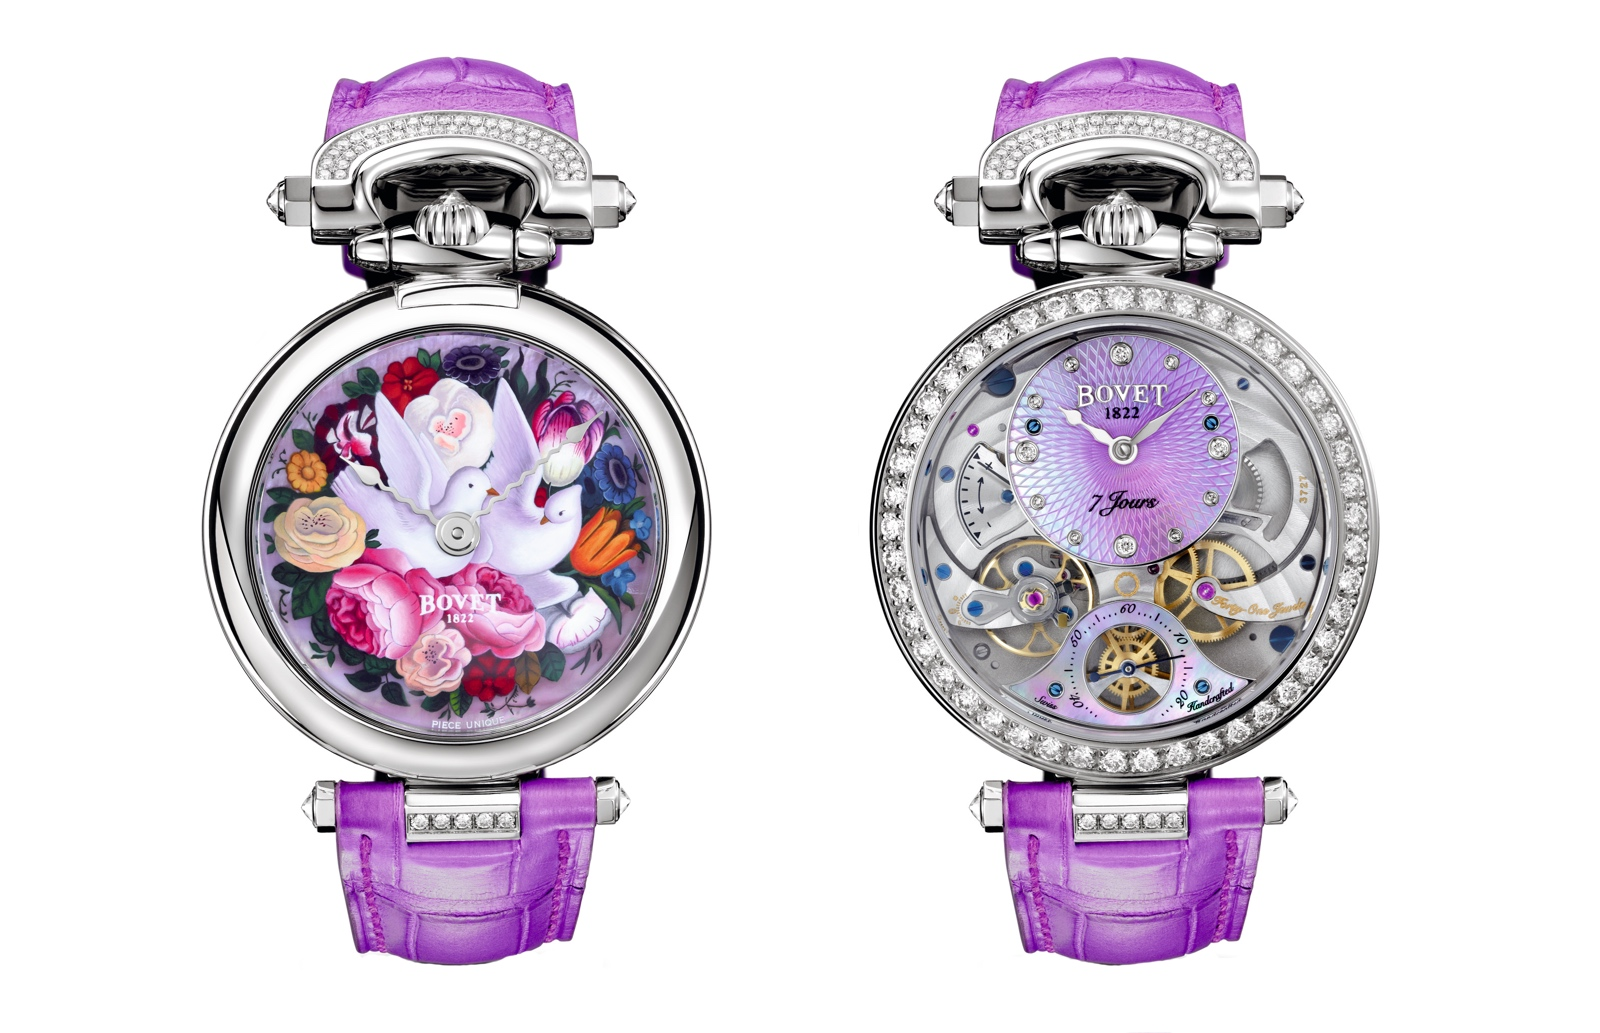 BOVET Lady Bovet Only Watch 2015 duo